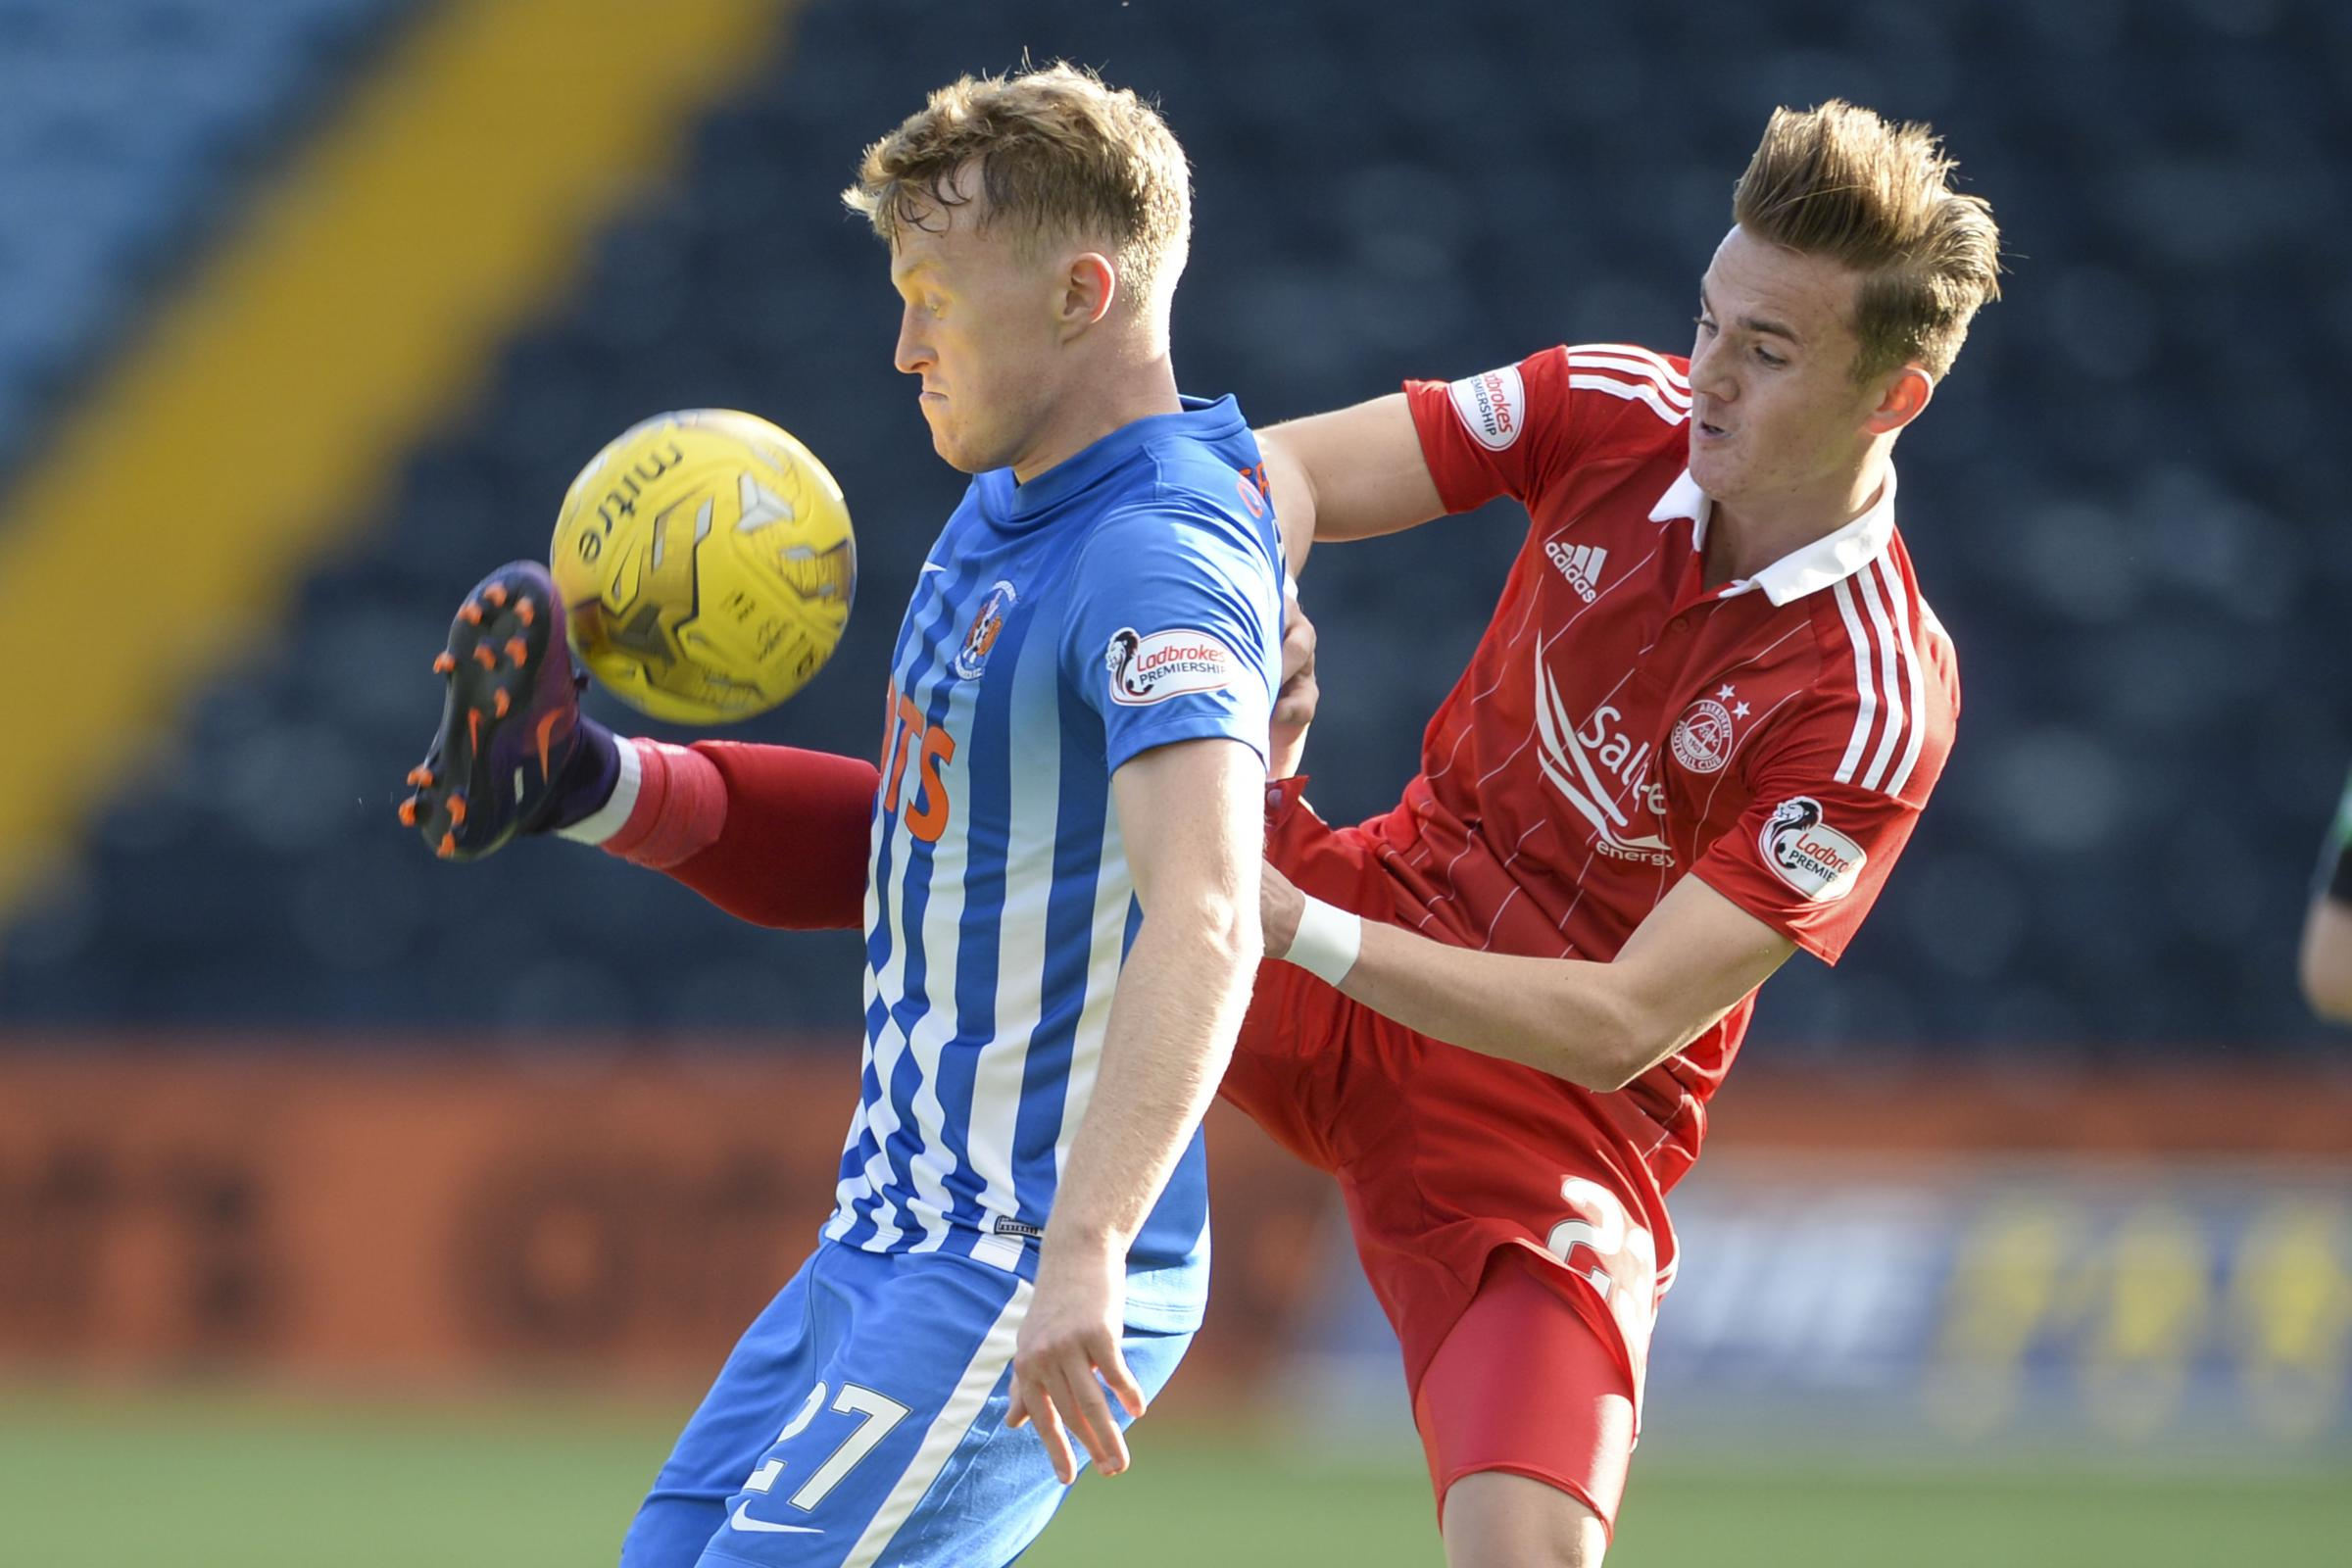 Luke Hendrie, left, has had previous loan spells with Kilmarnock, York and Hartlepool